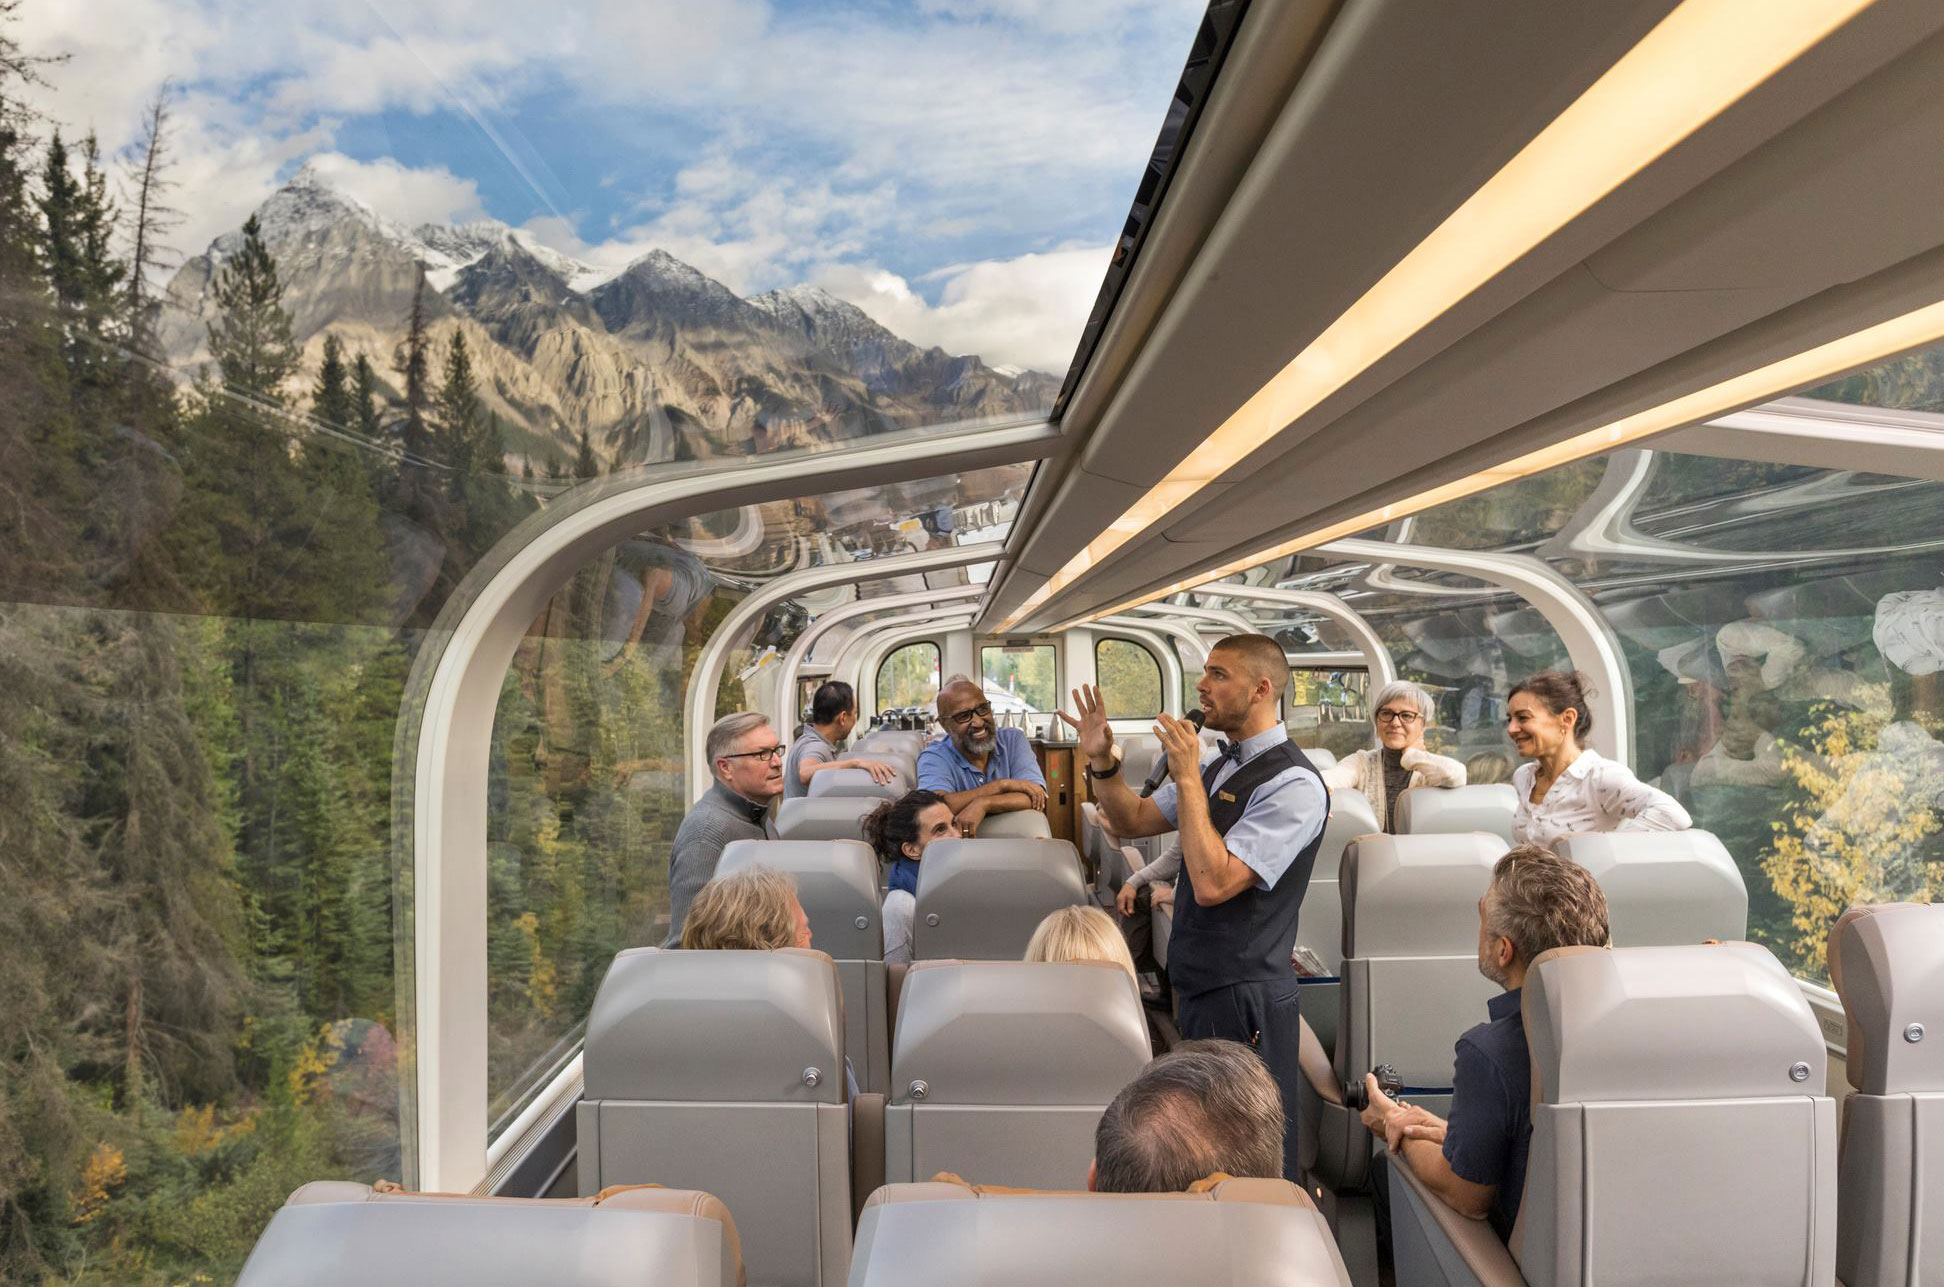 Experience the Canadian Rockies on a glass-domed train